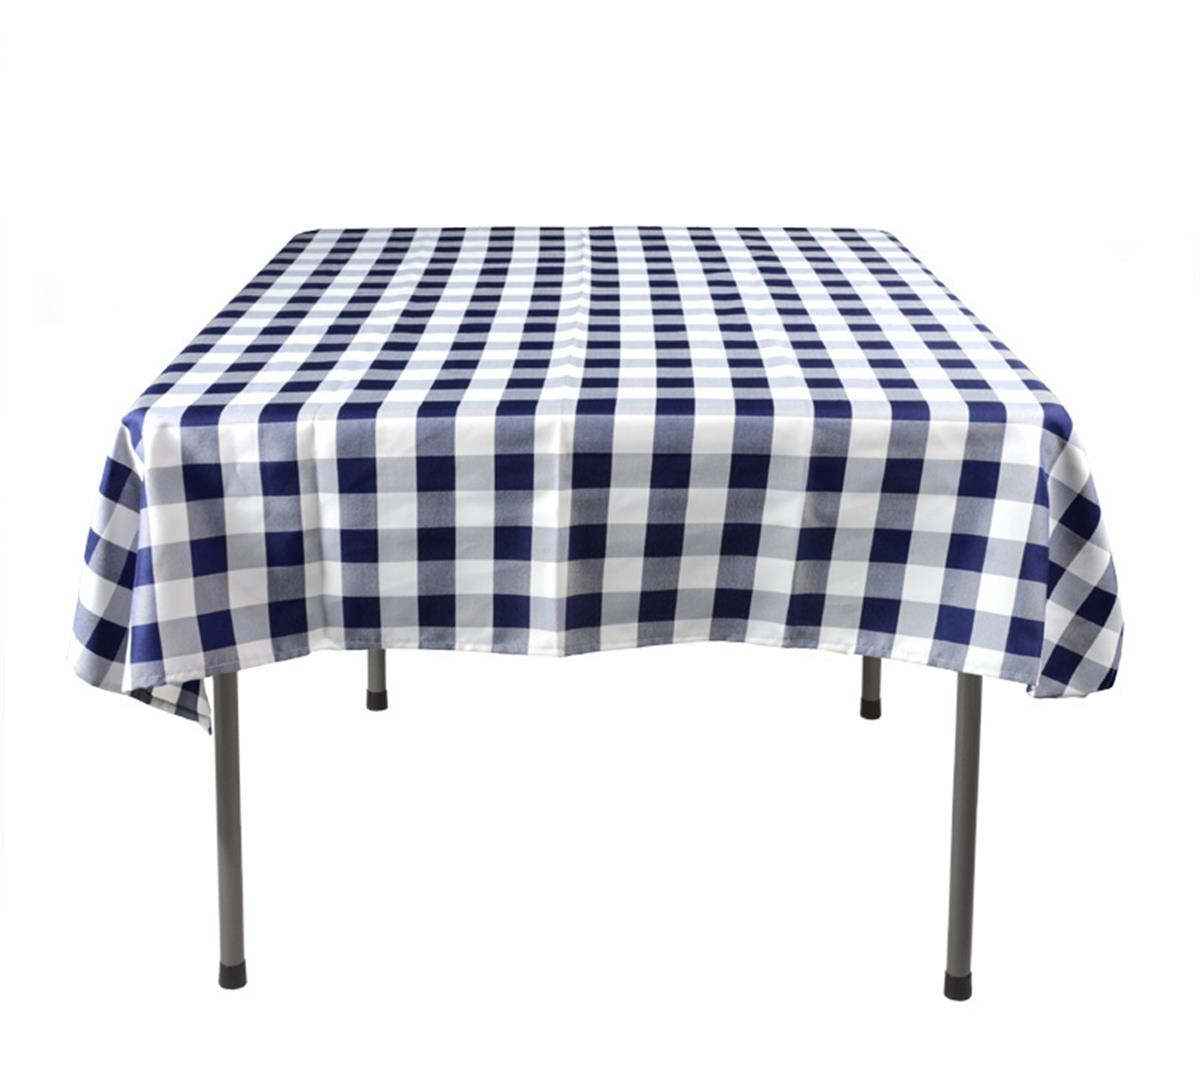 Checkered Tablecloth Blue Amp White Square Shaped Cover